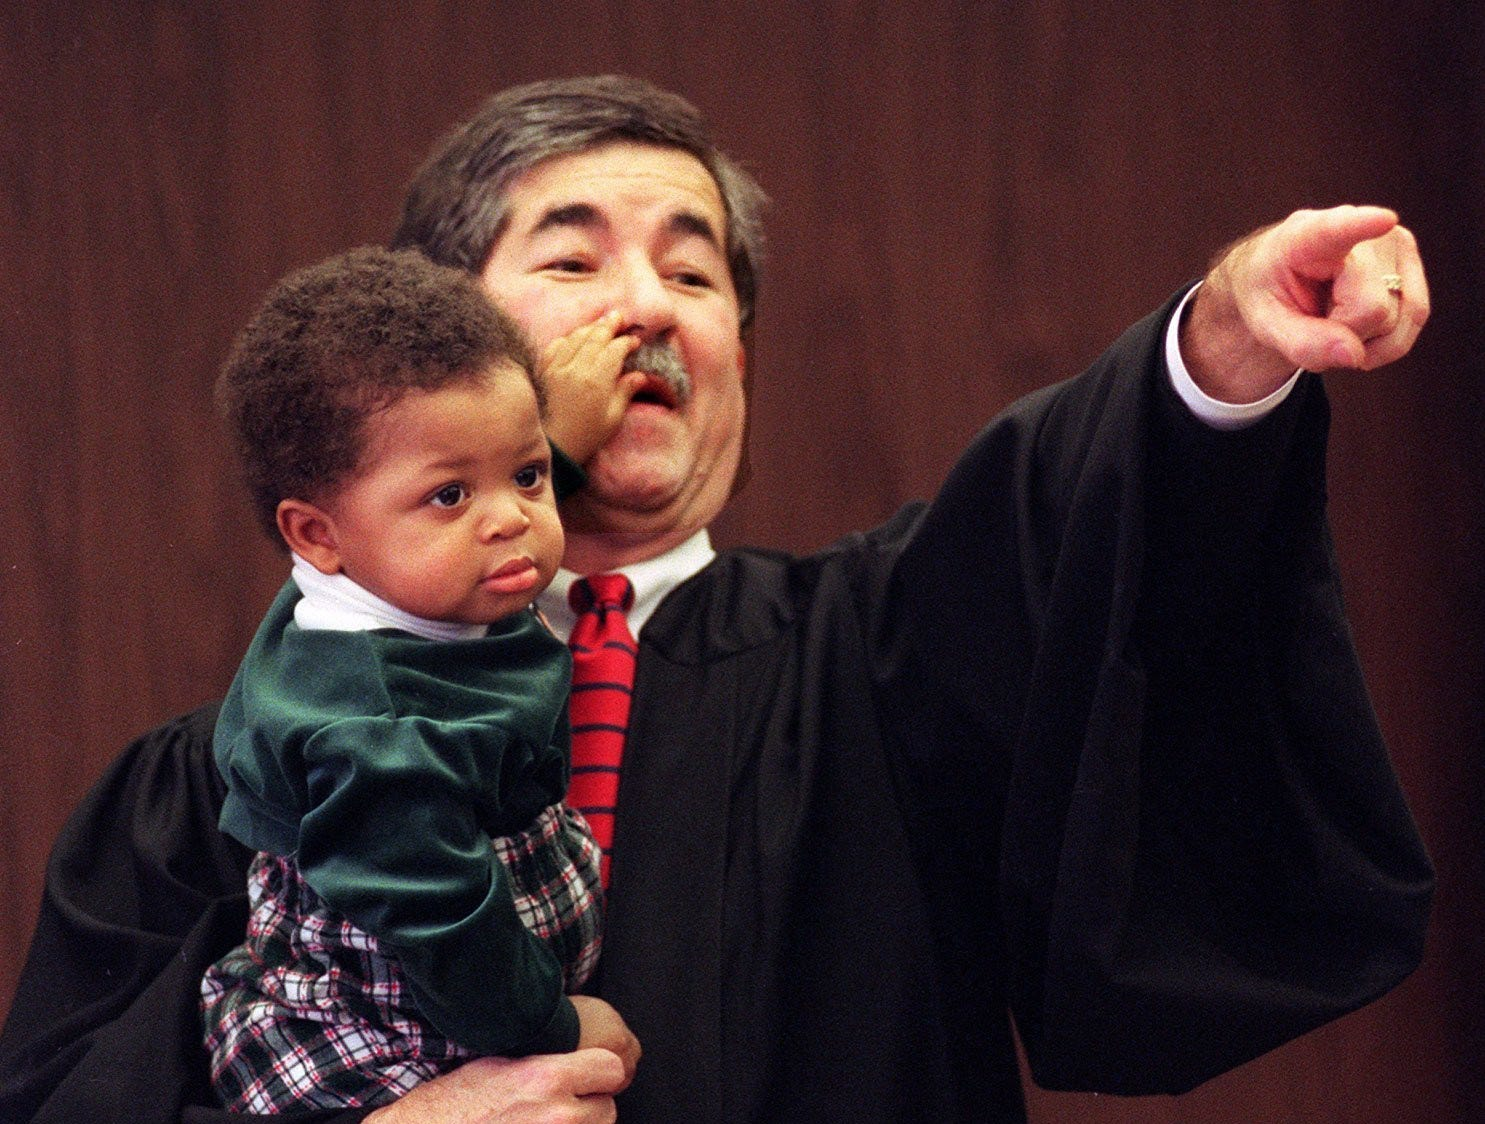 Young Andre Robertson, 10 months, holds on tight to Ingham County Probate Court Judge George Economy's mustache Dec.23, 1997, as Economy points out Andre's now official parents, Alvin and Jacqueline Robertson, after adoption proceedings in Economy's courtroom.